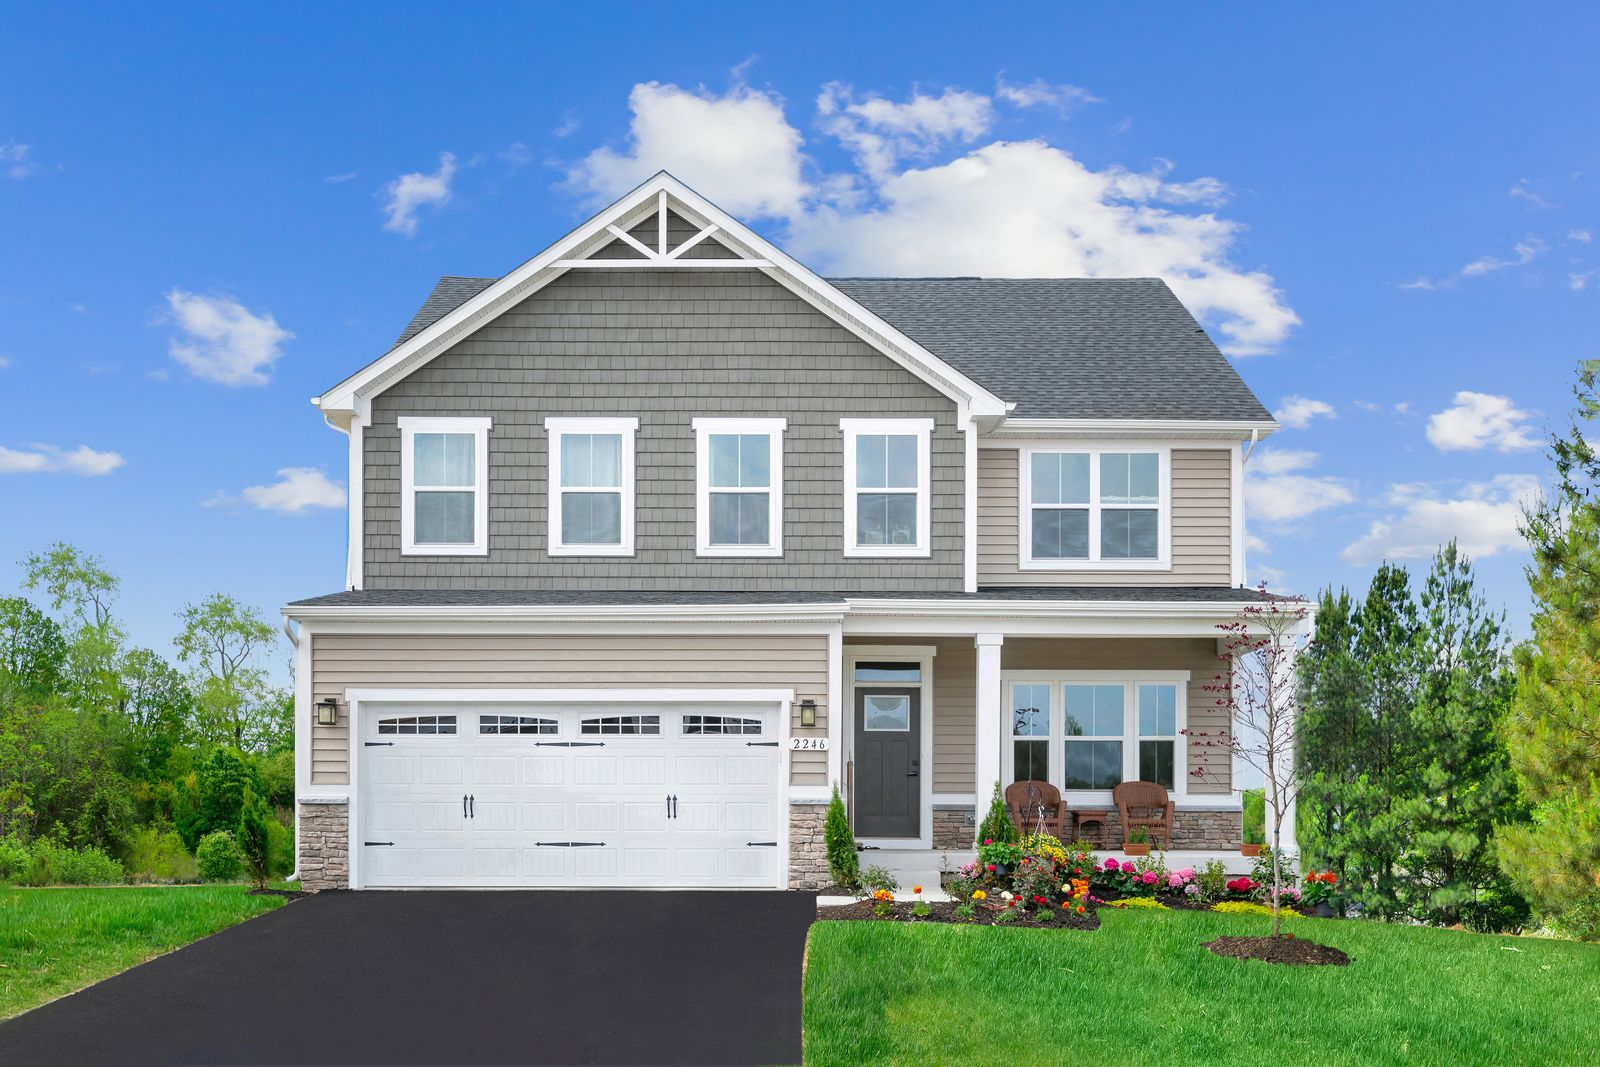 NEW PRICING NOW AVAILABLE AT SUNRISE JUNCTION!:The only new community in Chartiers Valley Schools located on the Panhandle Trail. Minutes to Collier Park, Oakdale & Settlers Ridge.Click here to schedule your visit!